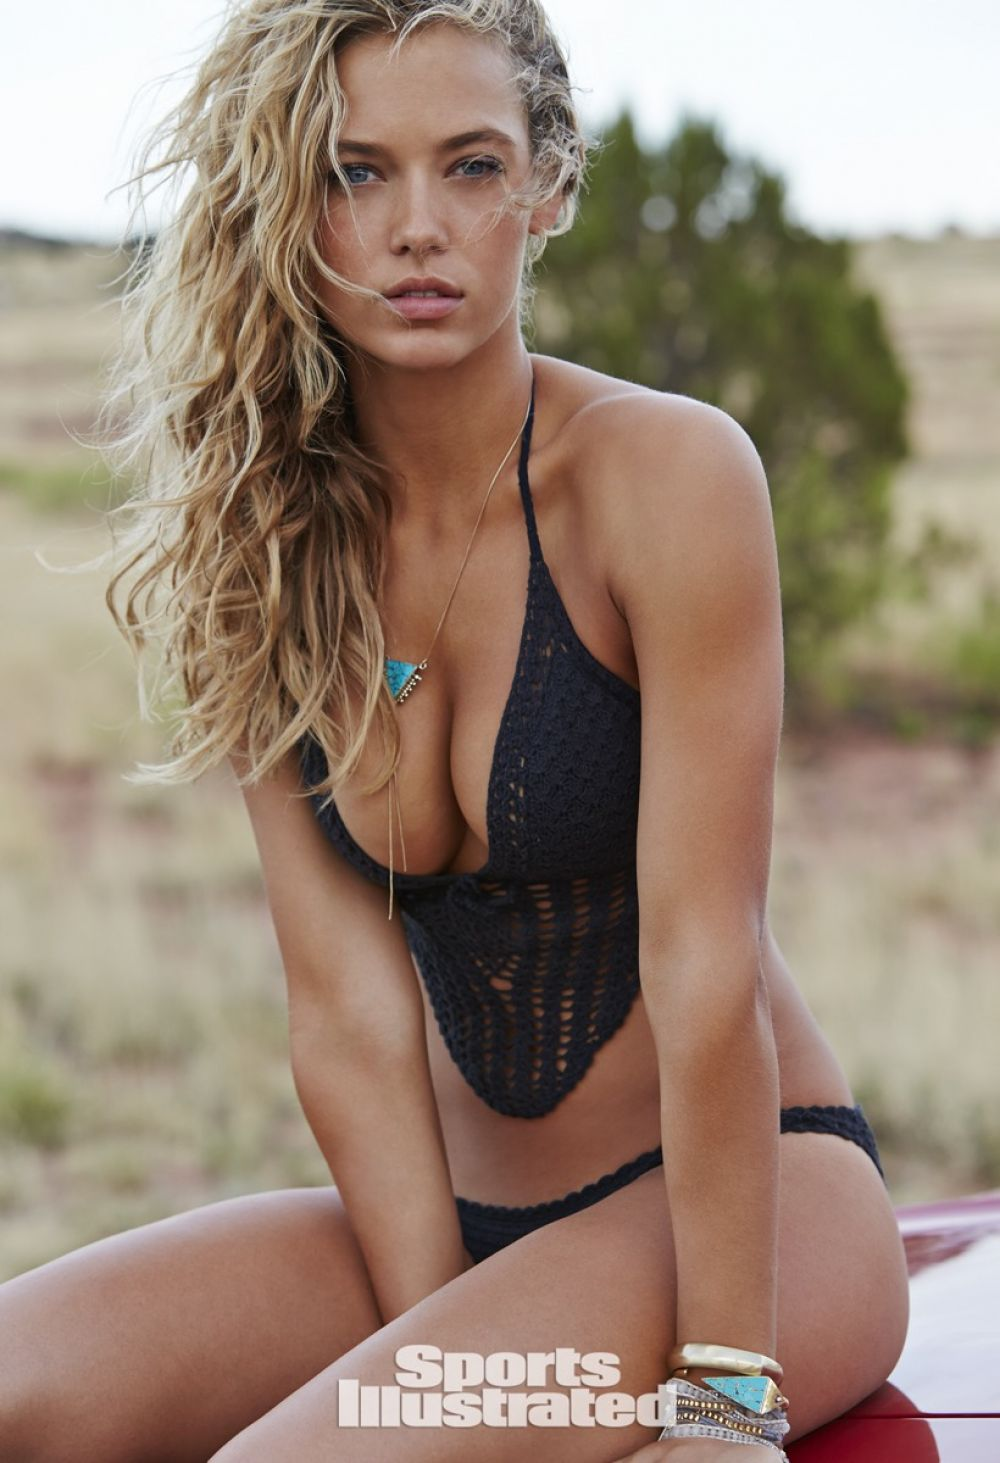 sports illustrated swimsuit 2015 issue kate bock in sports illustrated ...